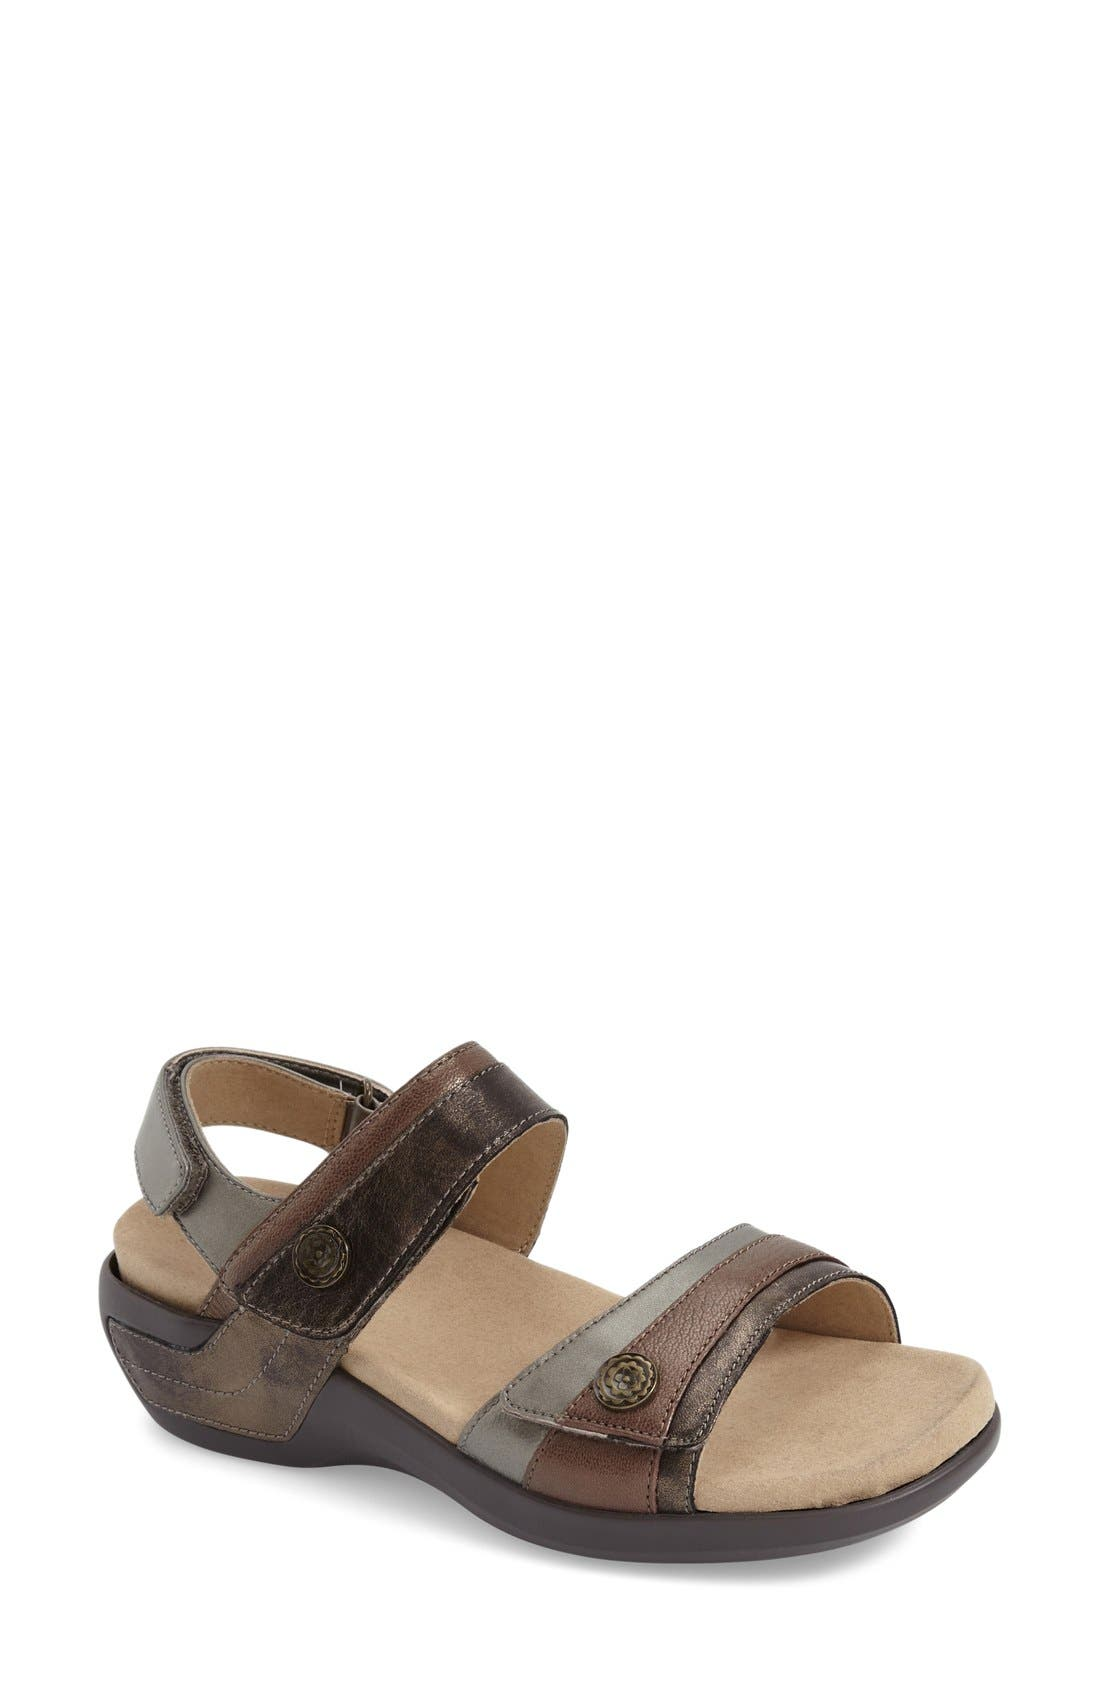 'Katherine' Sandal,                             Main thumbnail 1, color,                             Grey Leather